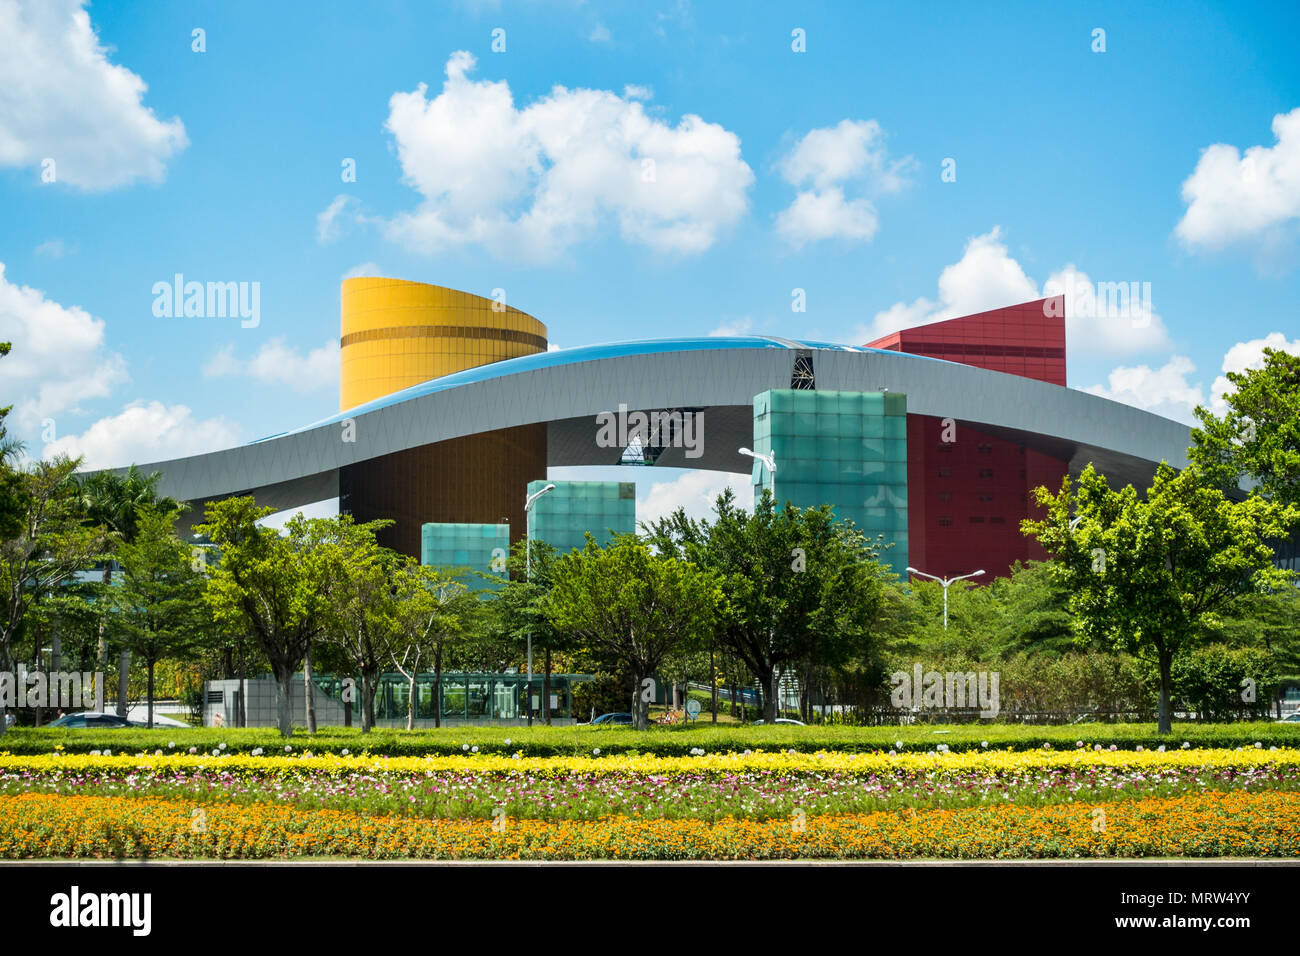 Shenzhen Civic Center, modern Chinese architecture and skyline in Futian district of Shenzhen, China - Stock Image